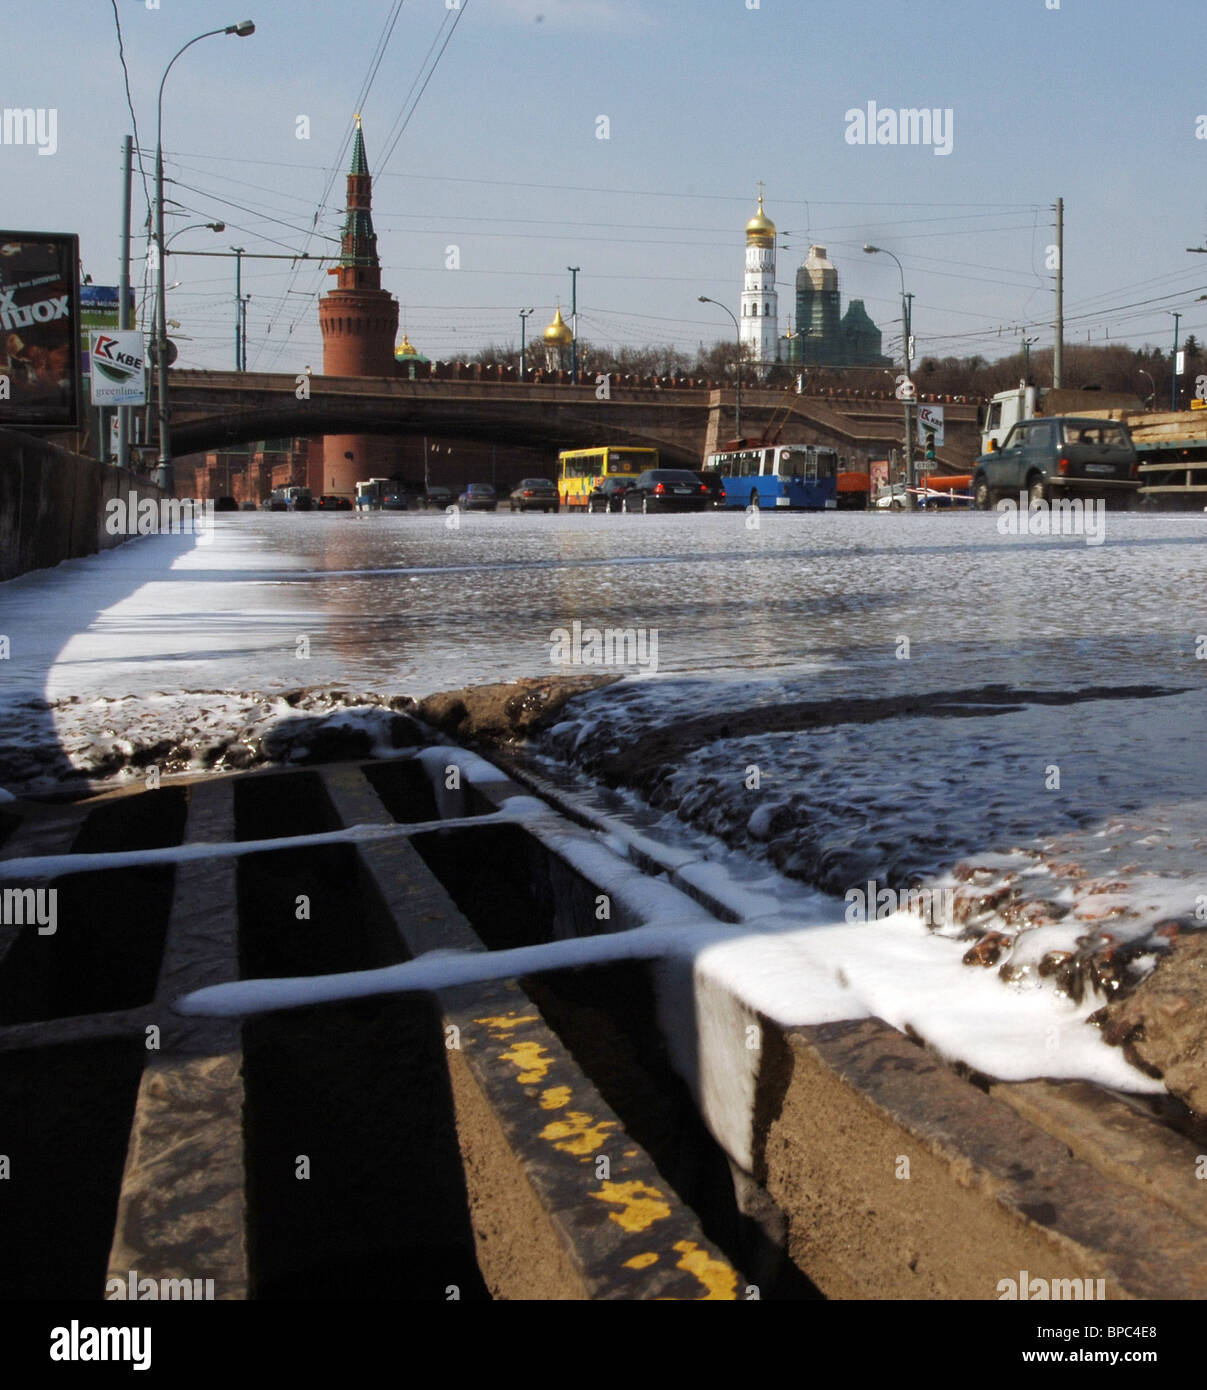 Moscow's municipal services cleanse road surfaces with special washing liquid 'Chistodor' - Stock Image